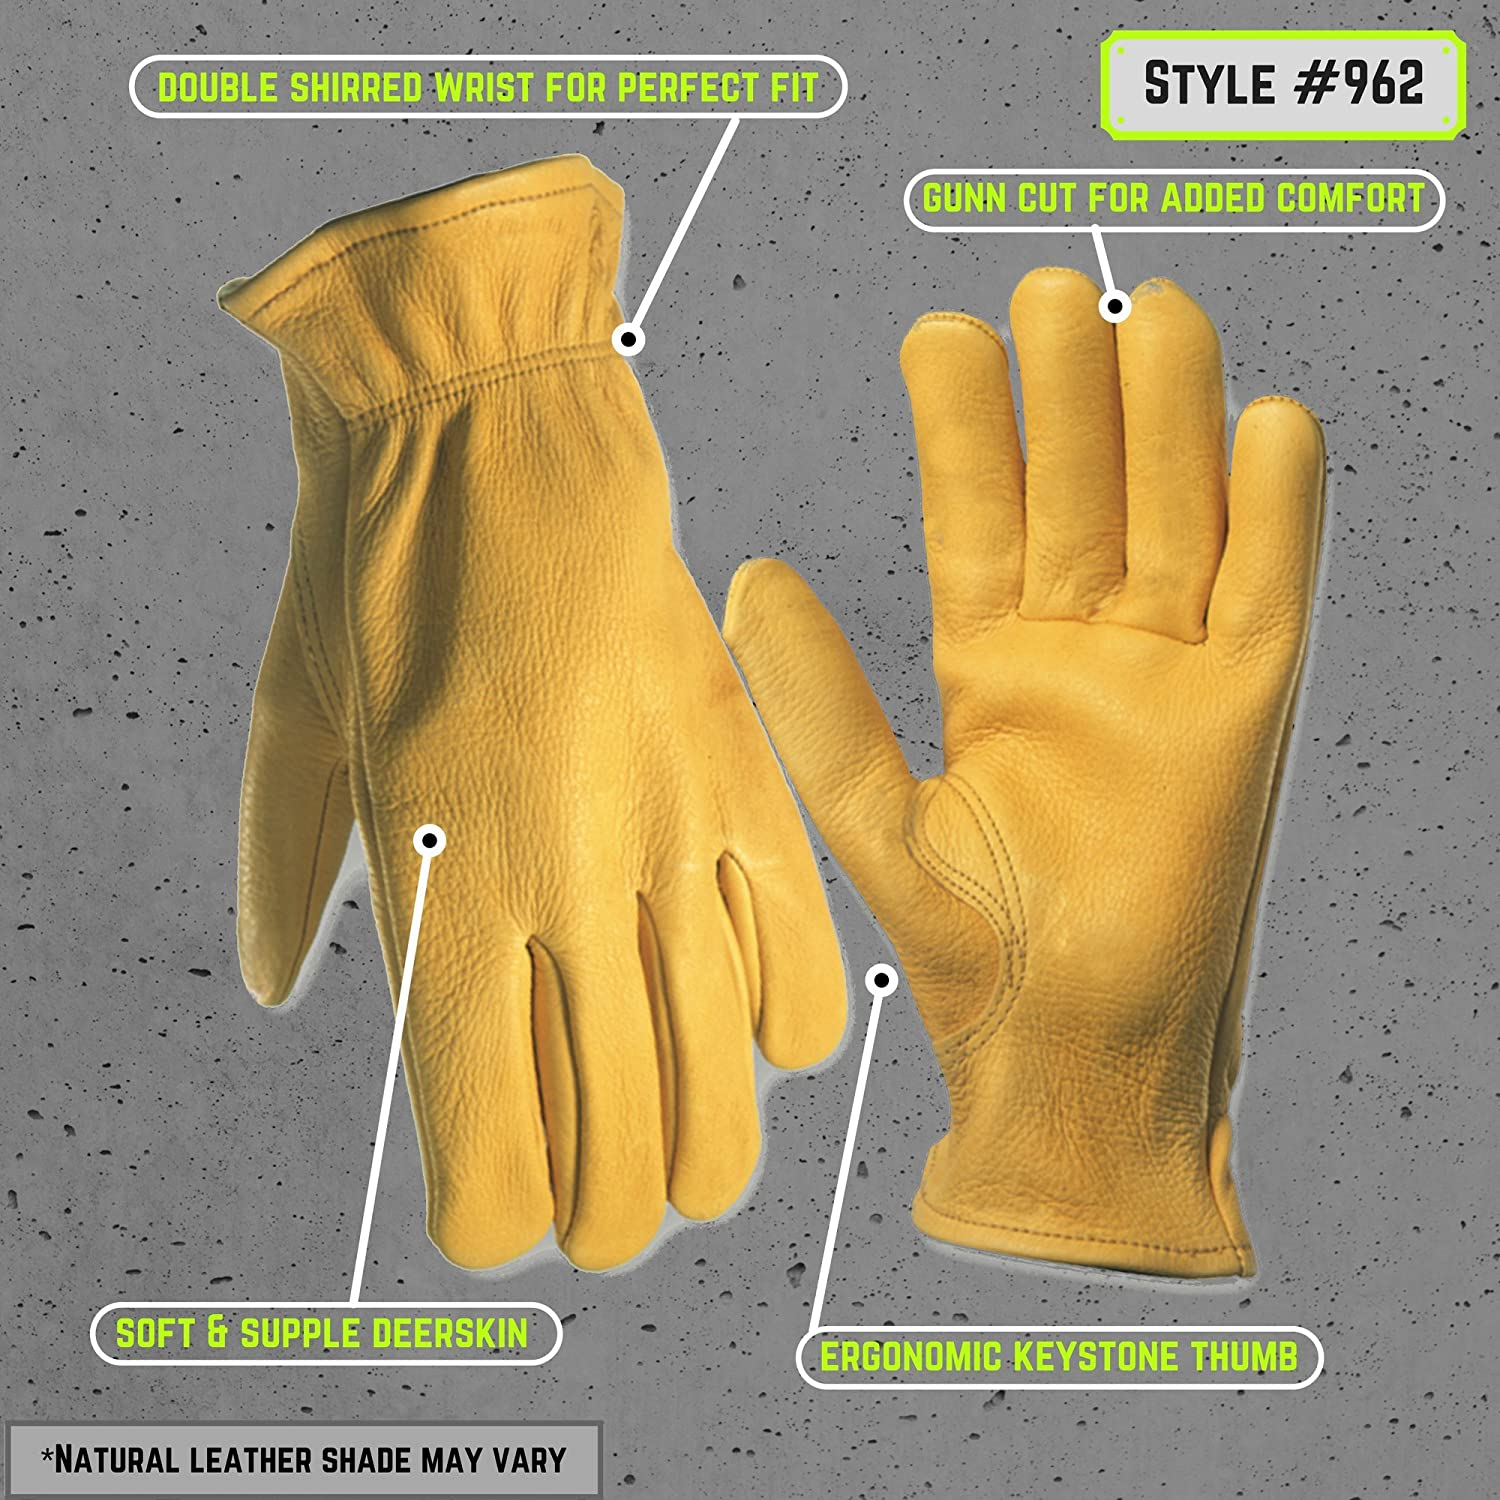 Insulated leather work gloves amazon - Deerskin Driver Gloves Full Leather Work And Driving Gloves Large Wells Lamont 962l Deer Skin Work Gloves Amazon Com